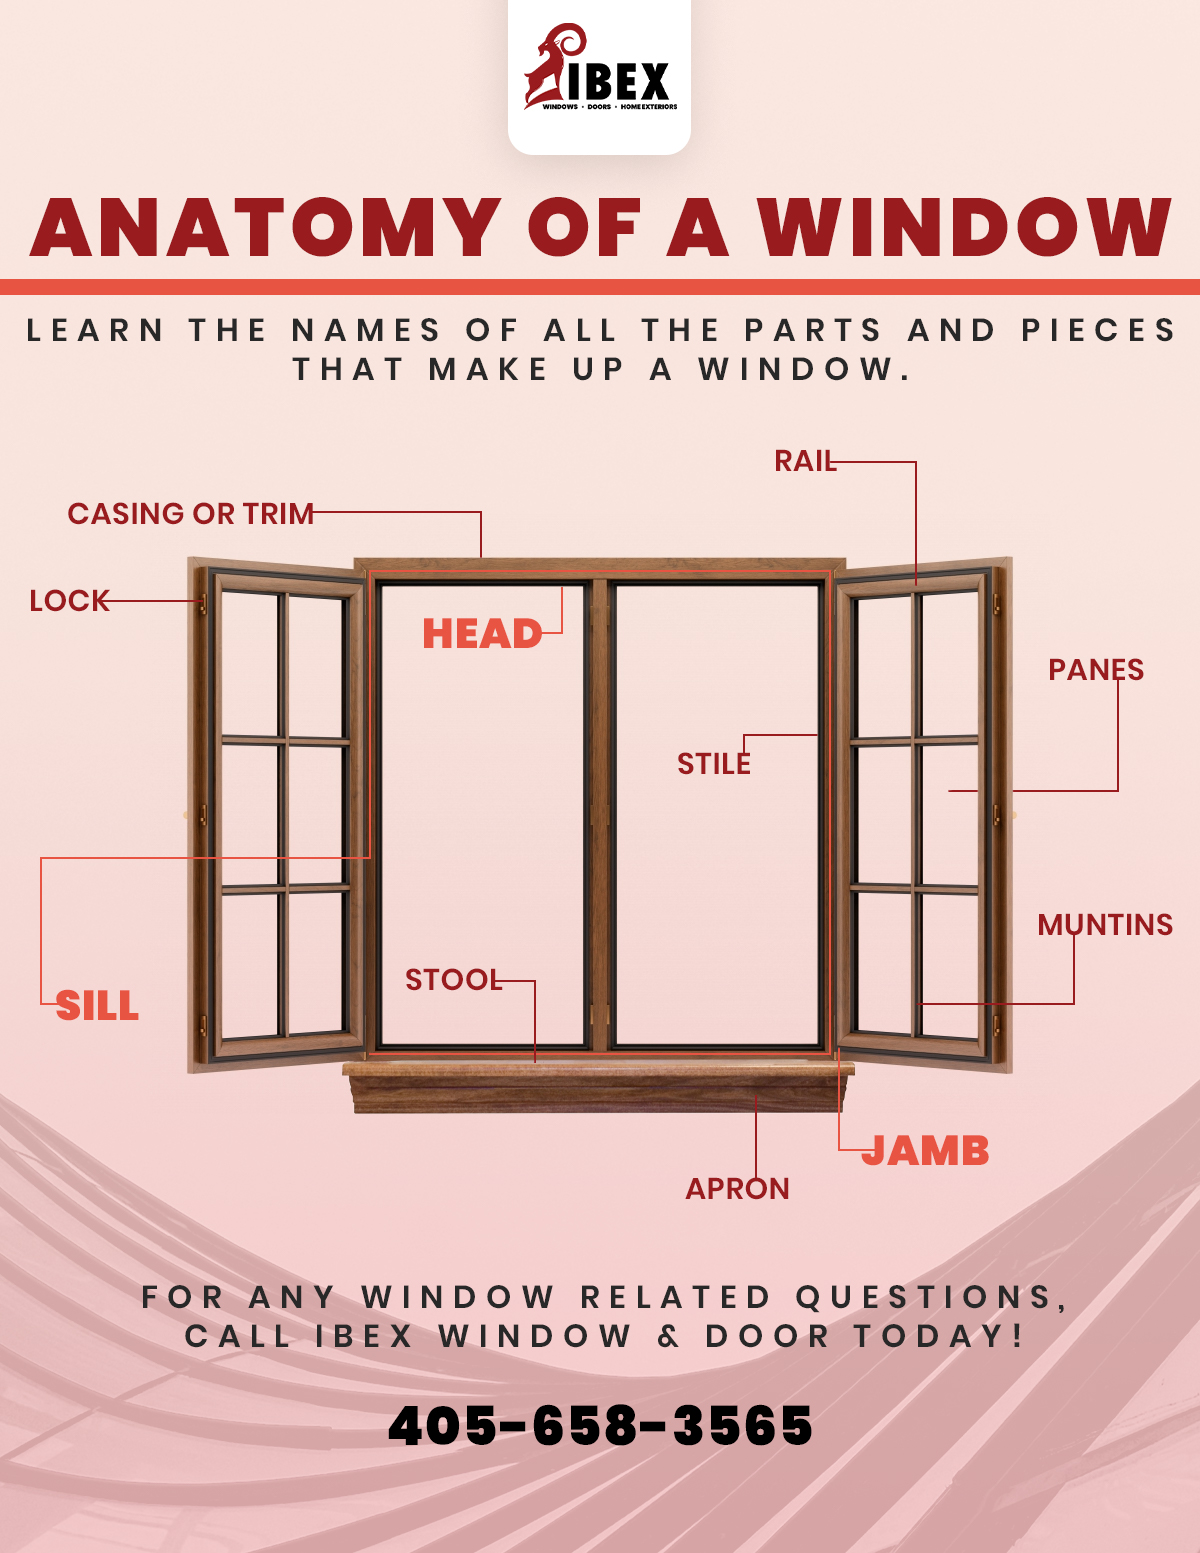 An infographic showing the different terminology for window parts